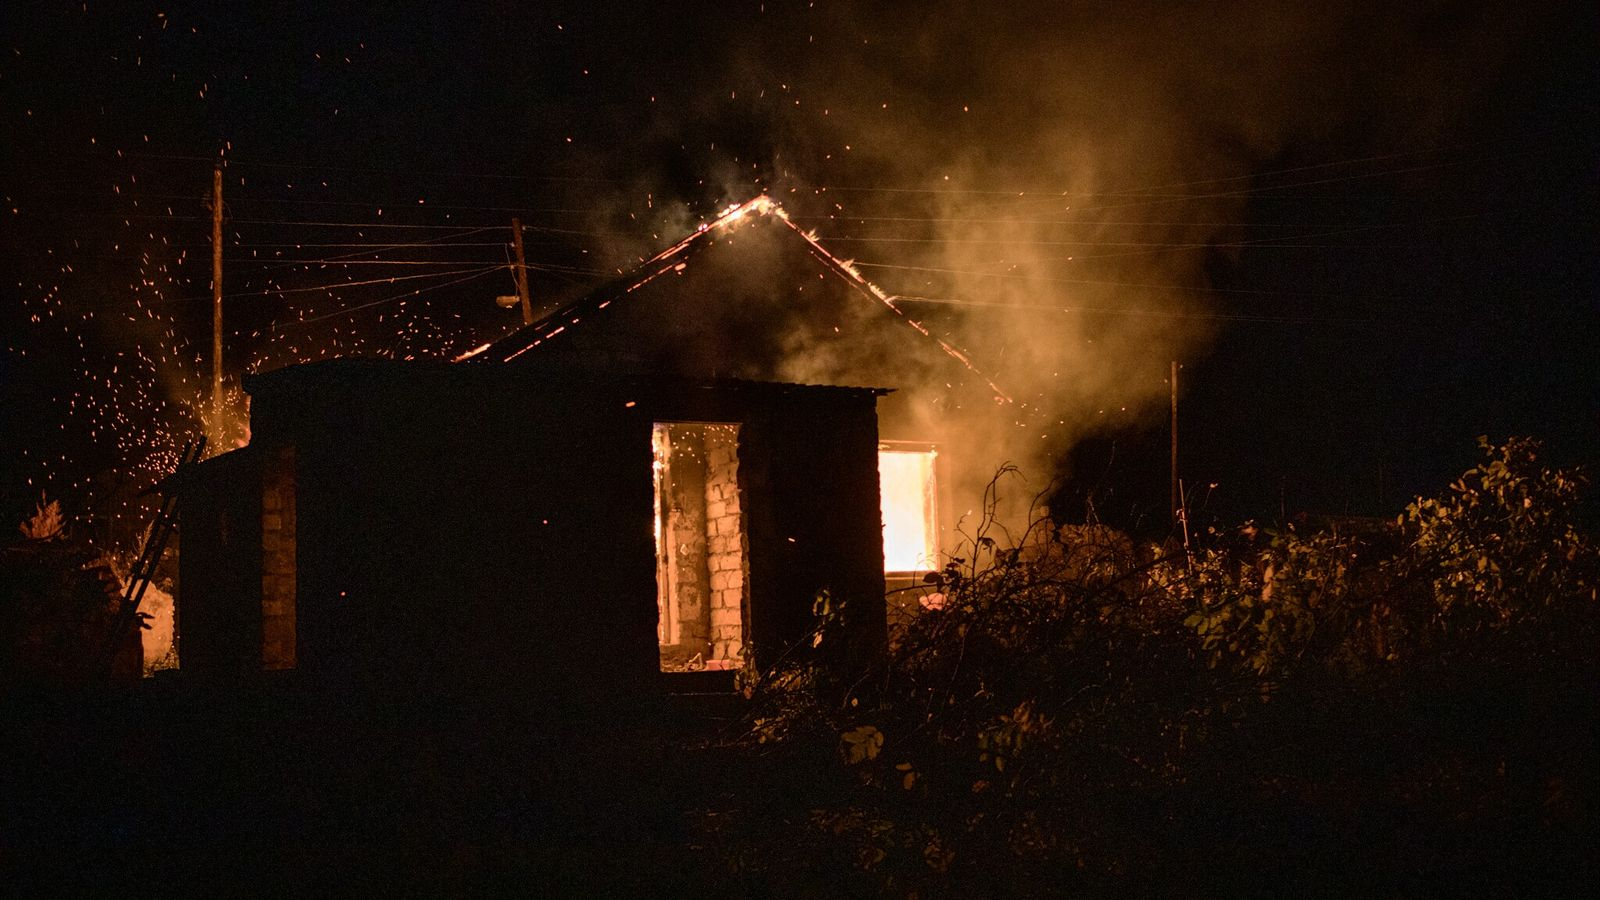 Some Armenian residents set fire to their homes to prevent Azerbaijanis from living in them.